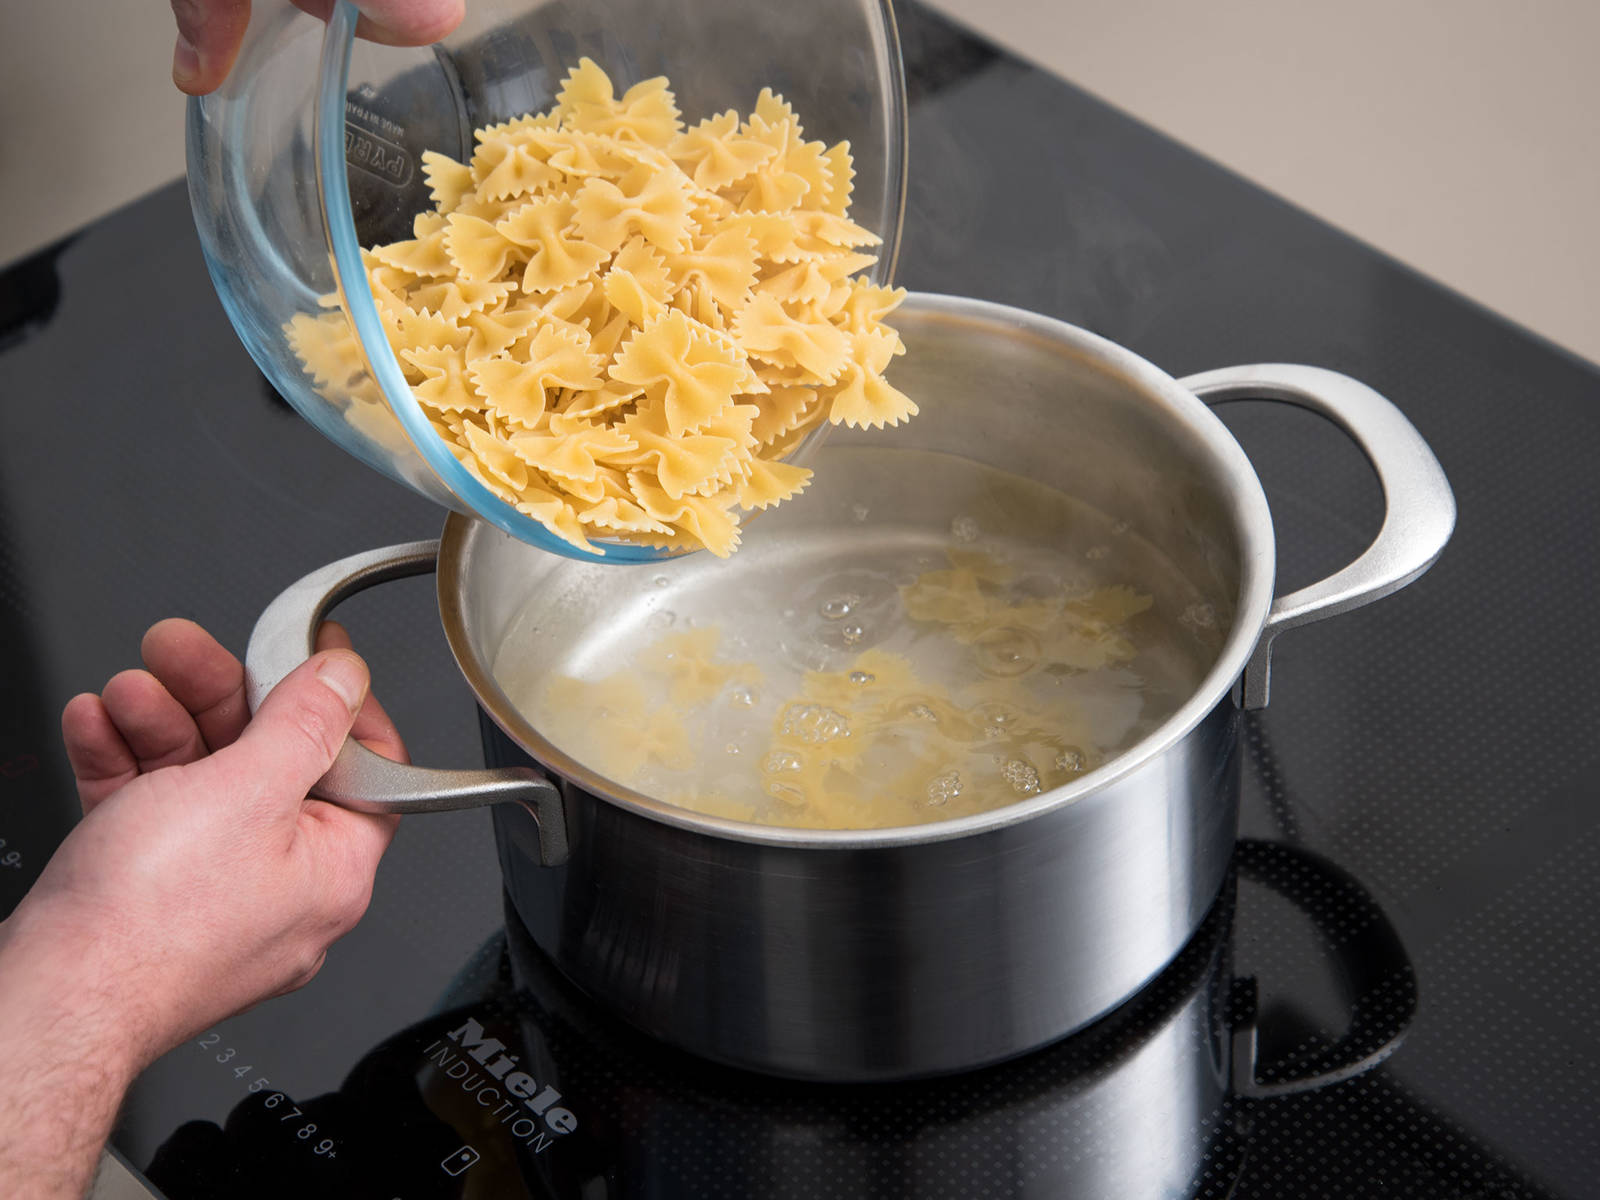 In another pot of boiling, salted water, cook the farfalle until al dente and strain into colander and drain.